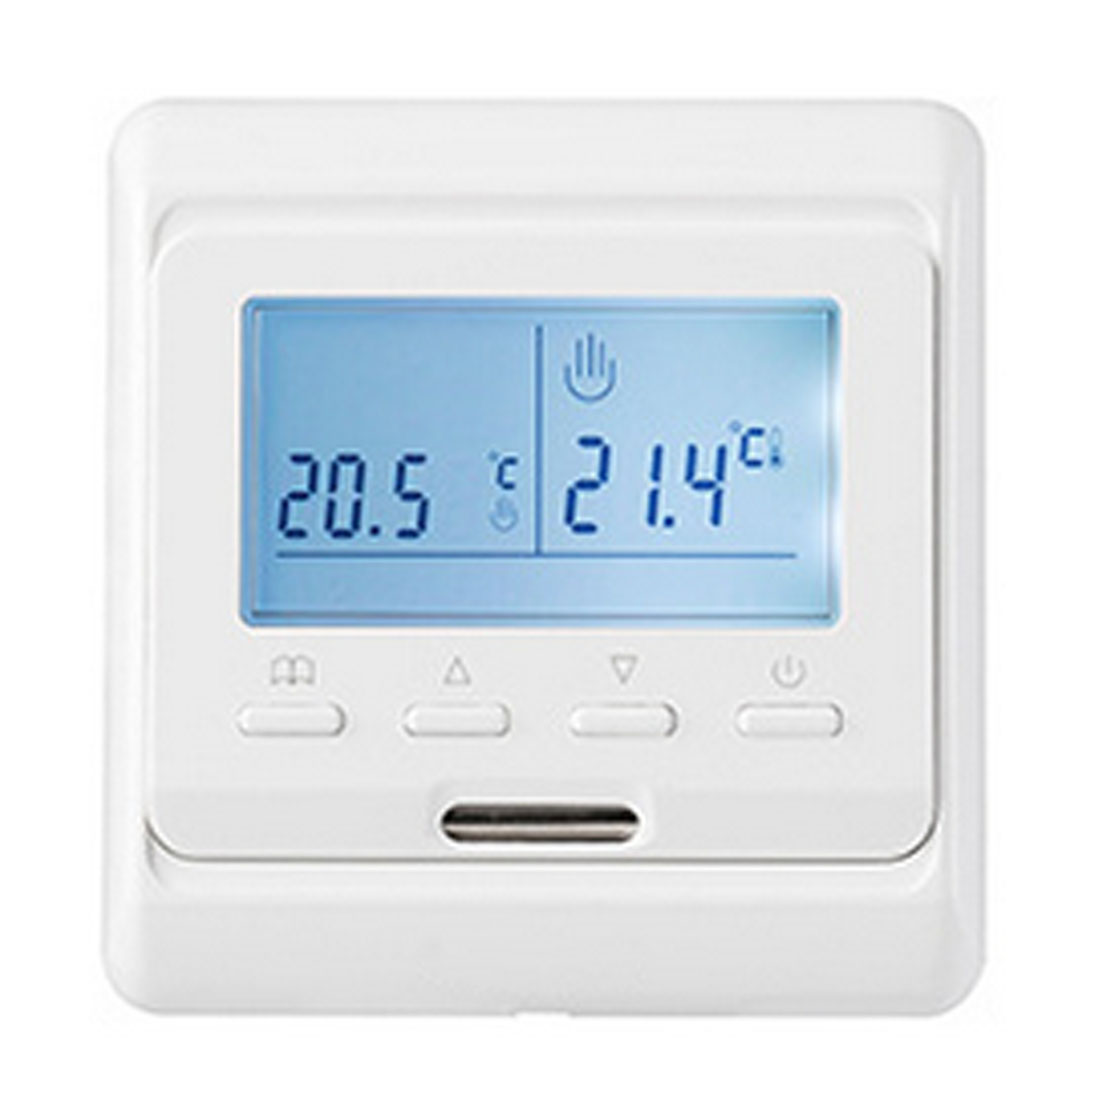 Digital Thermostat Weekly Programmable AC220V 16A Floor Heating Thermostat Room Temperature Controller Thermometer floor heating thermostat air condition temperature controller switch 16a 220v b119